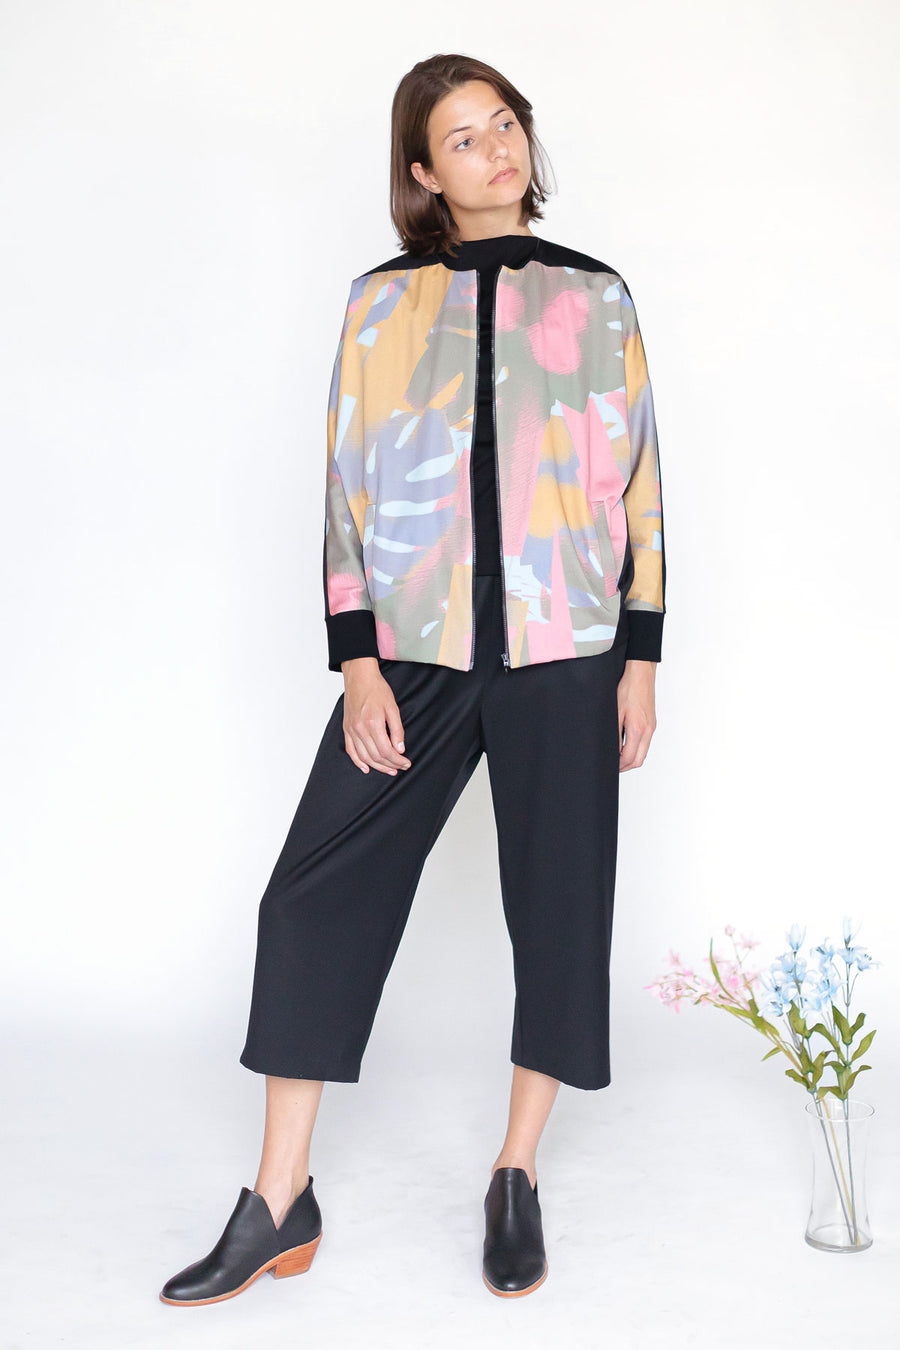 Zip up jacket with abstract pattern and black culottes for women